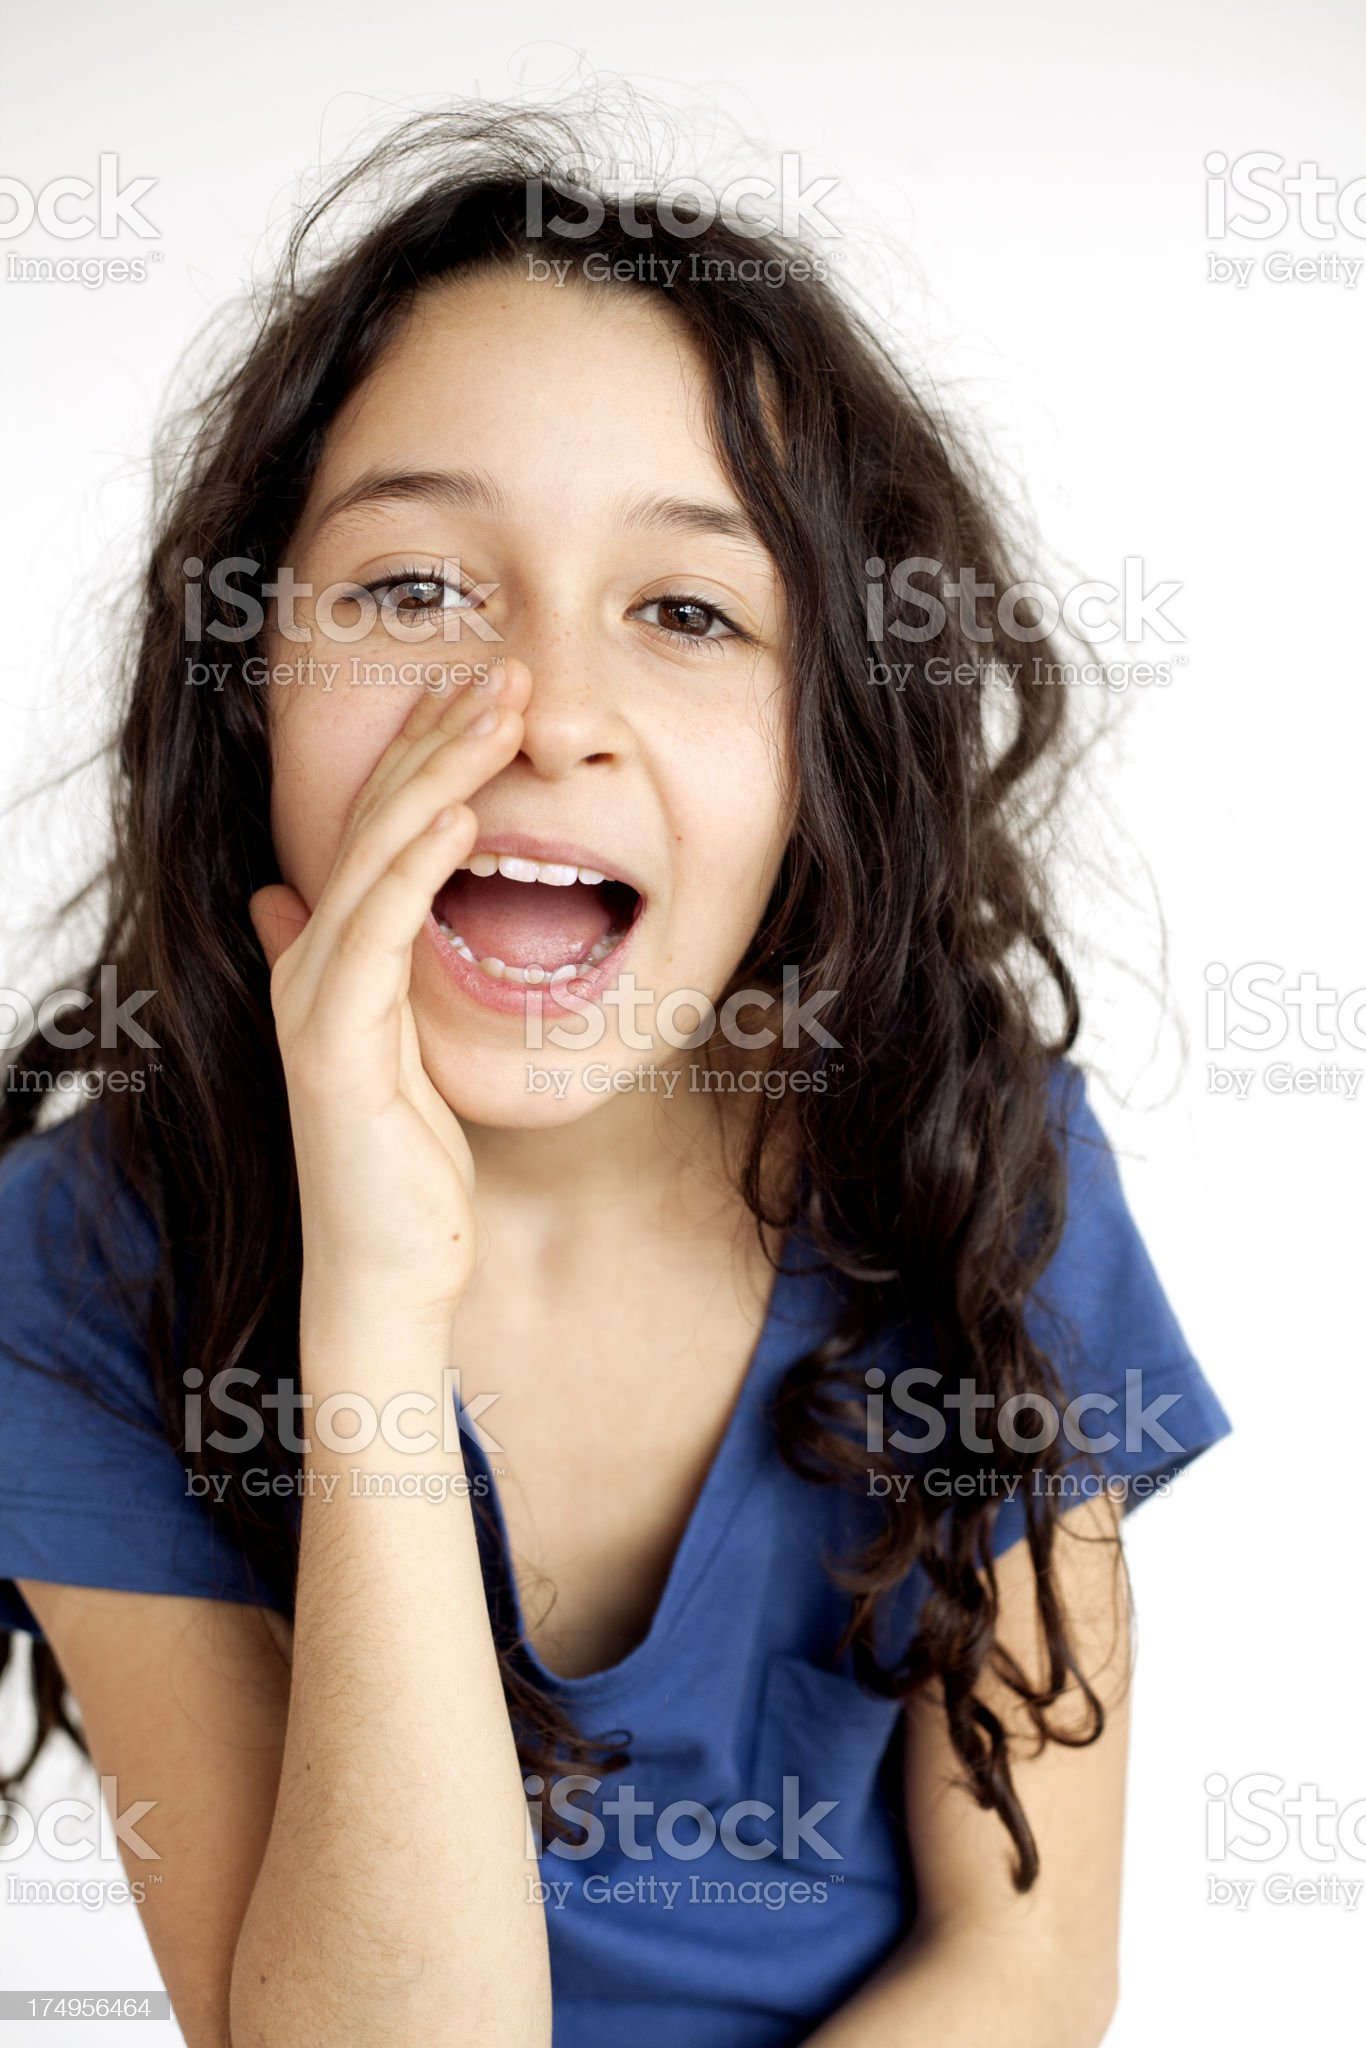 girl shouting royalty-free stock photo